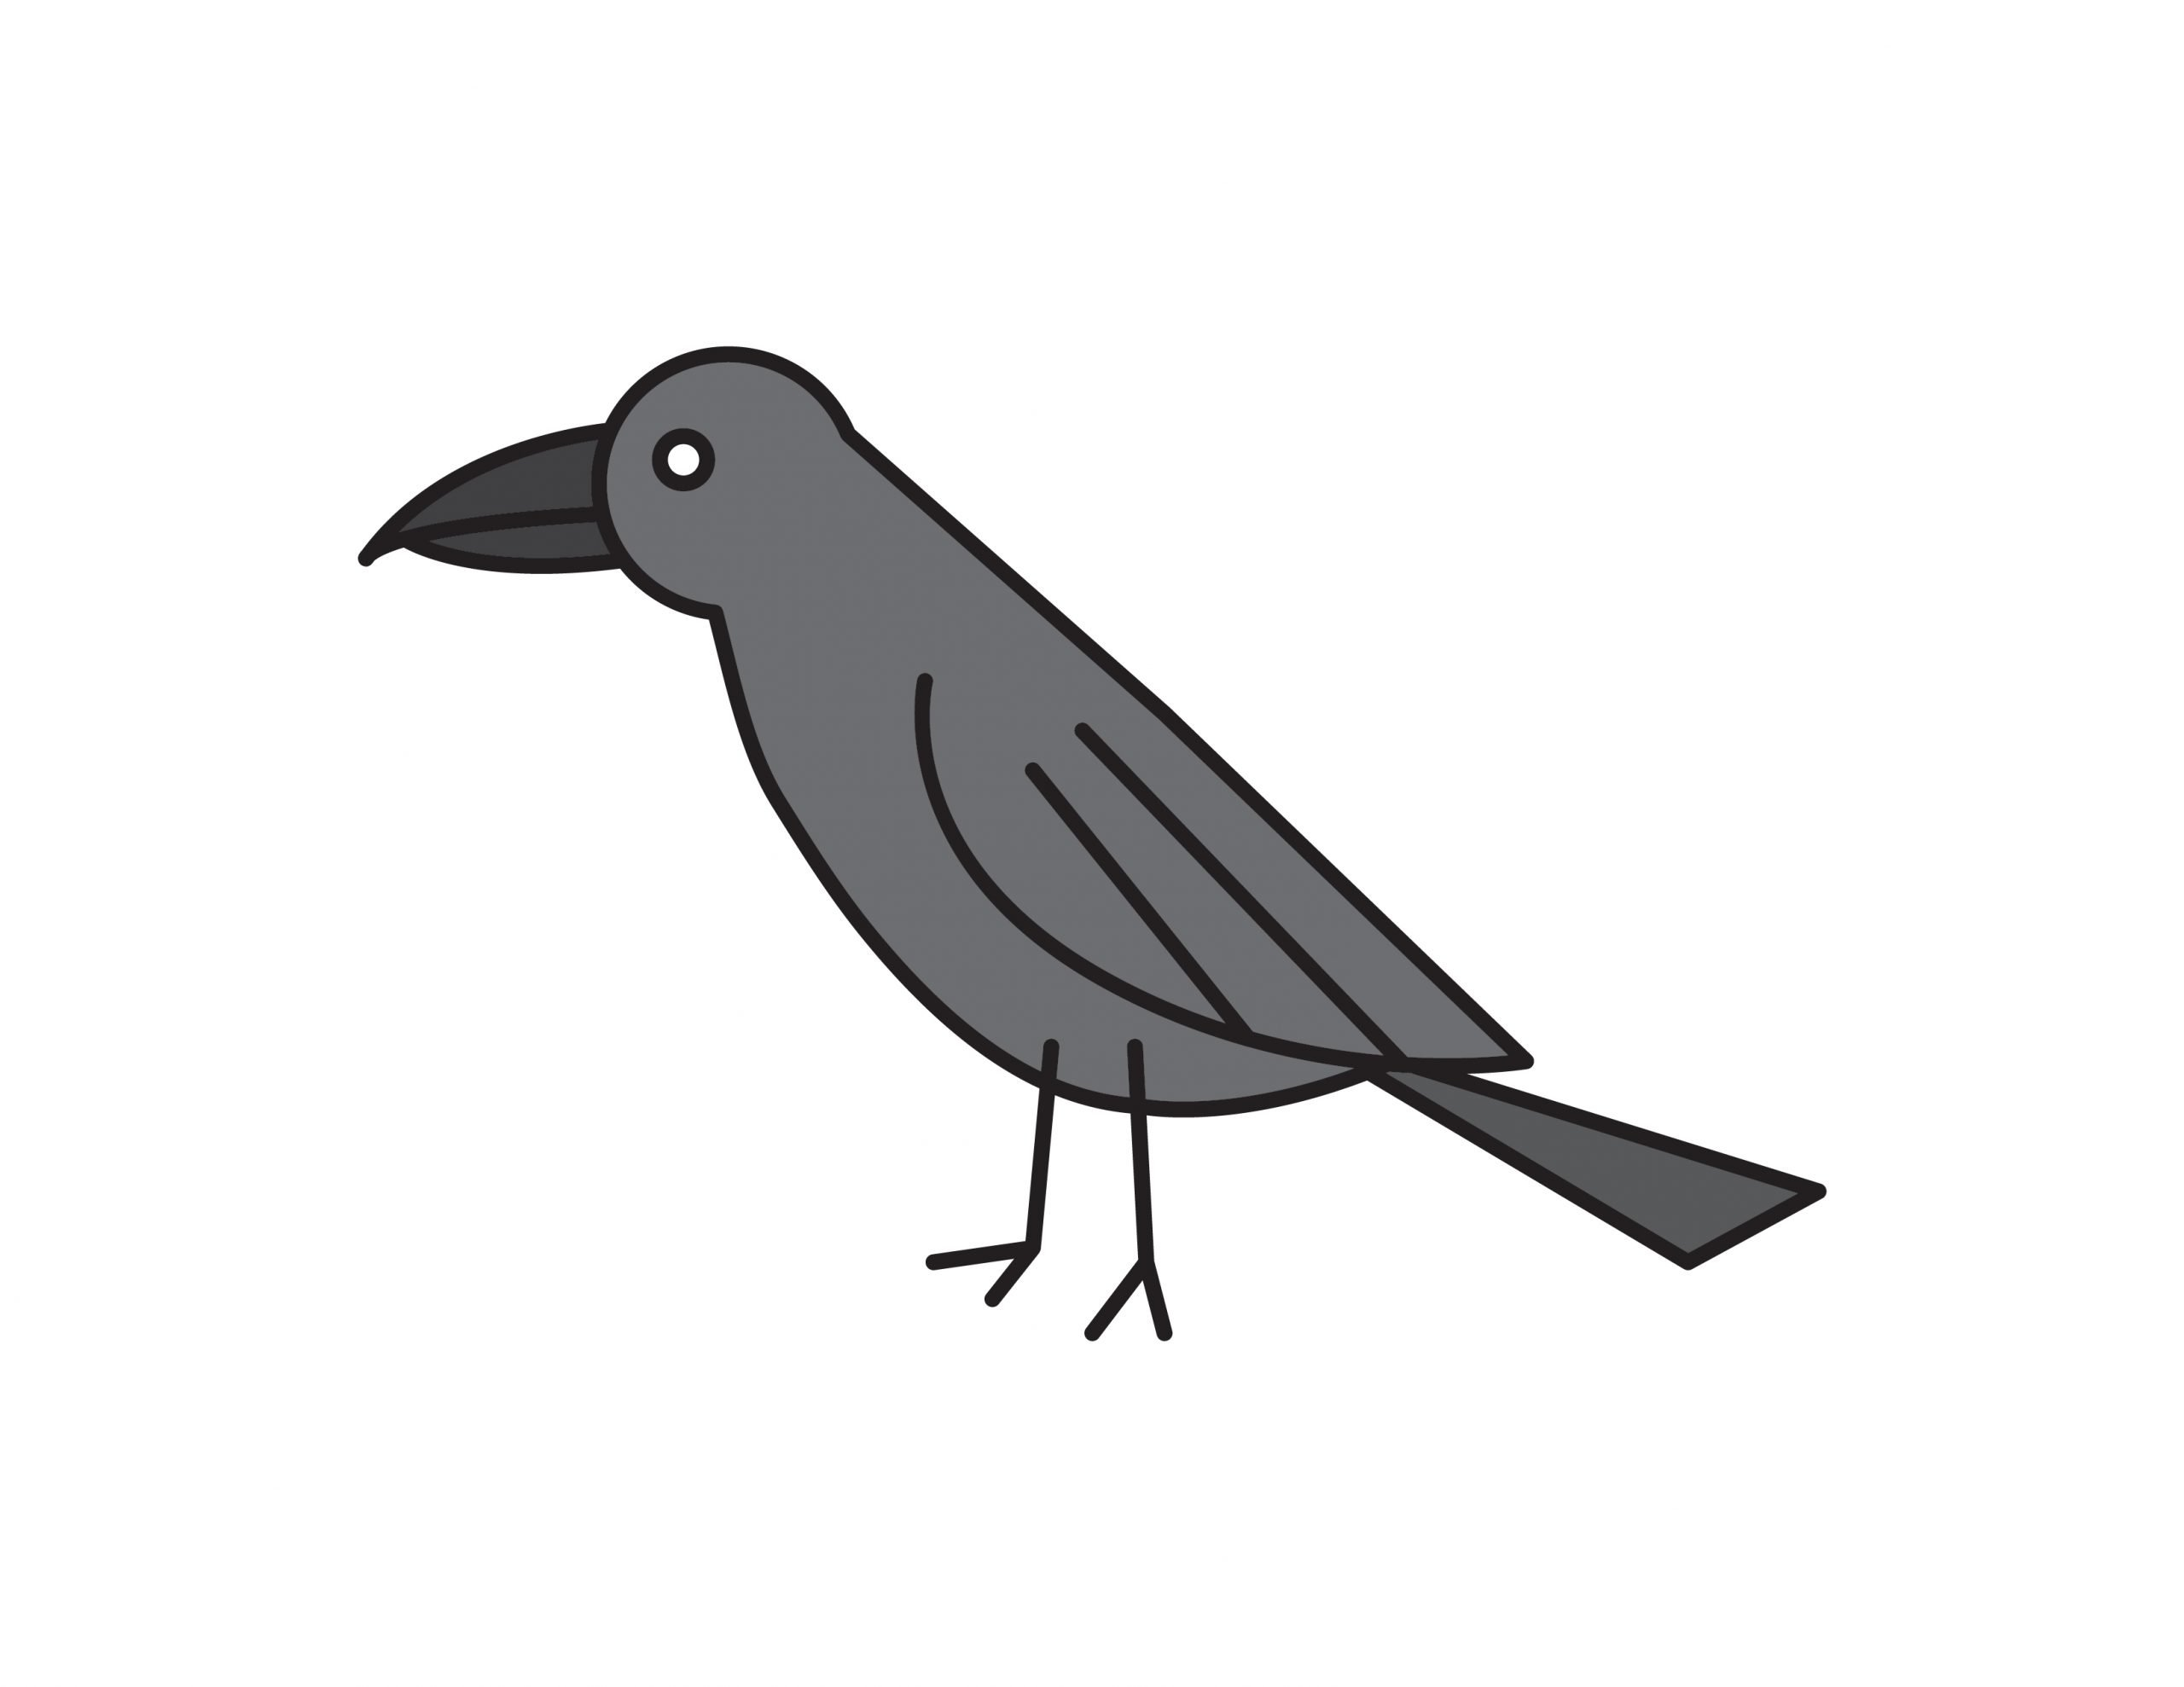 How To Draw a Black Raven (Bird) – Easy Tutorial for Kids